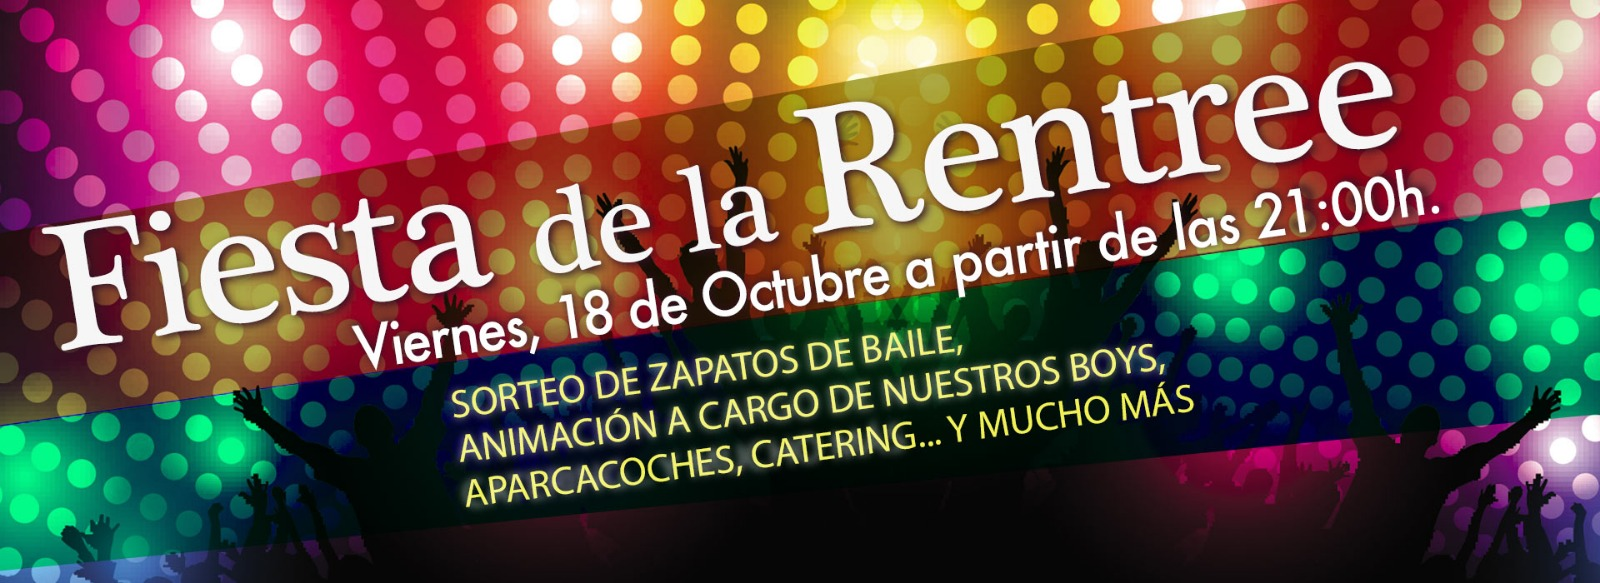 fiesta-rentree-oct-2019